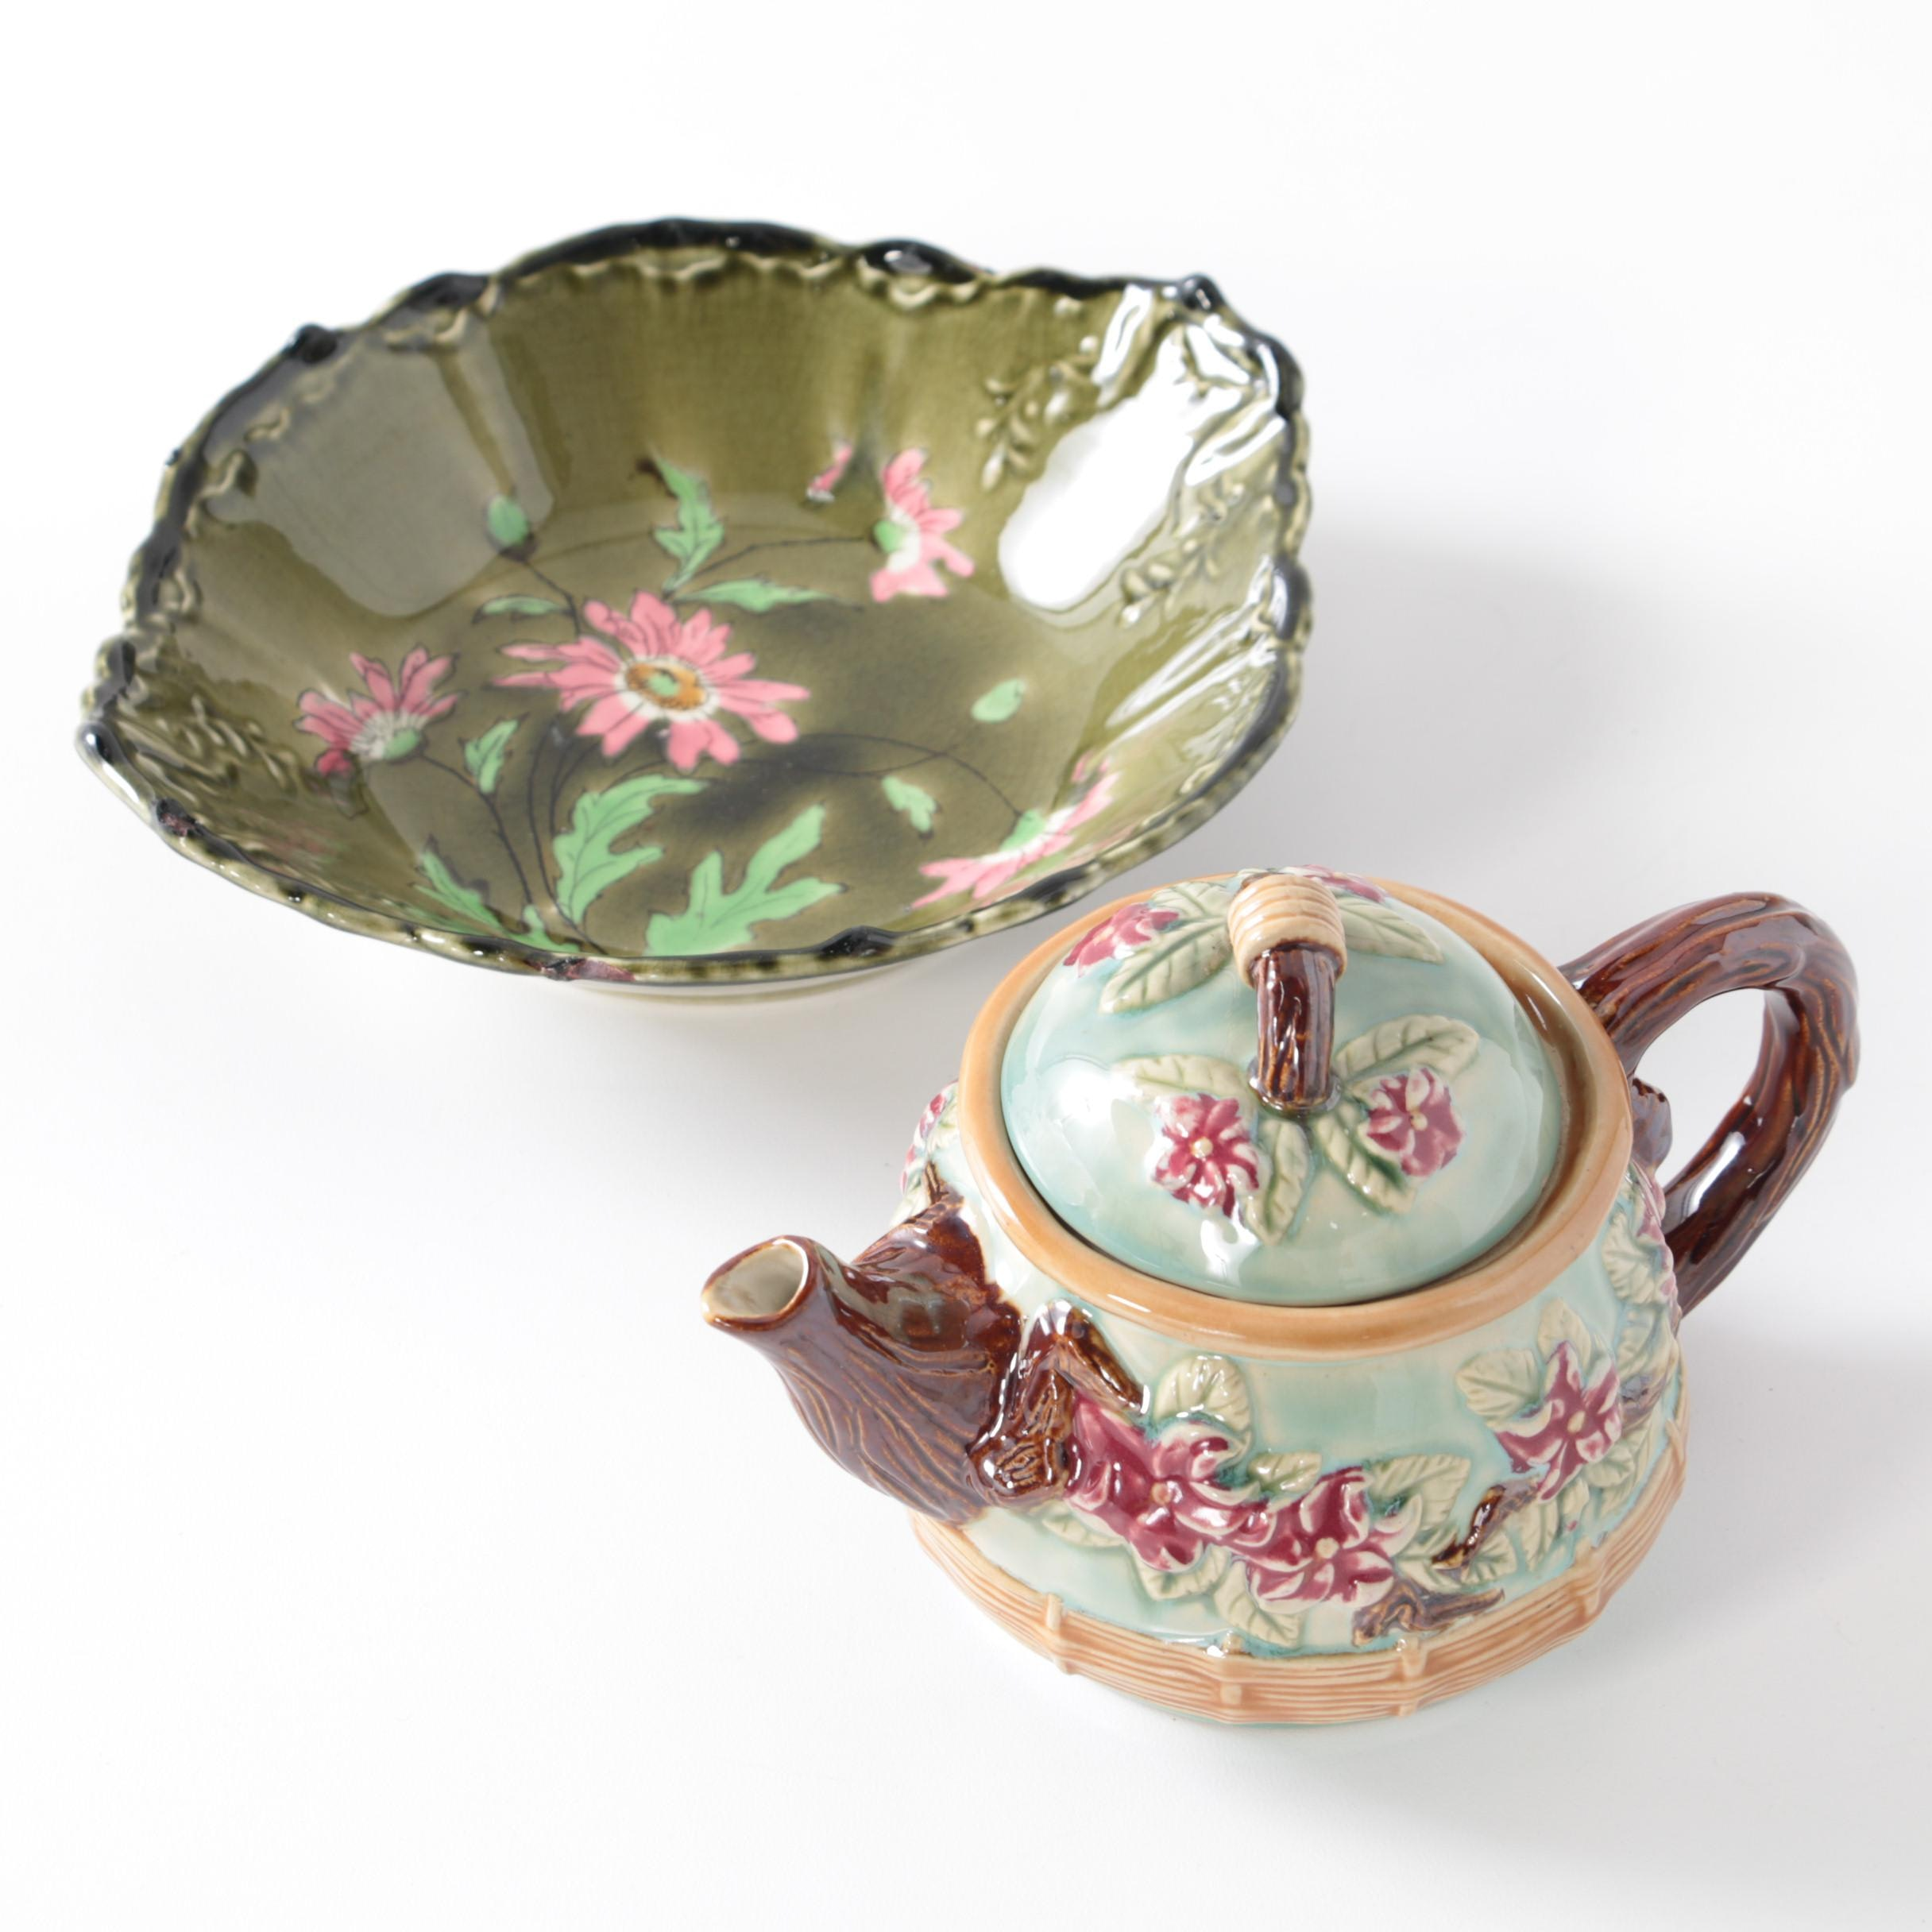 Majolica Tableware Including Teapot and Bowl